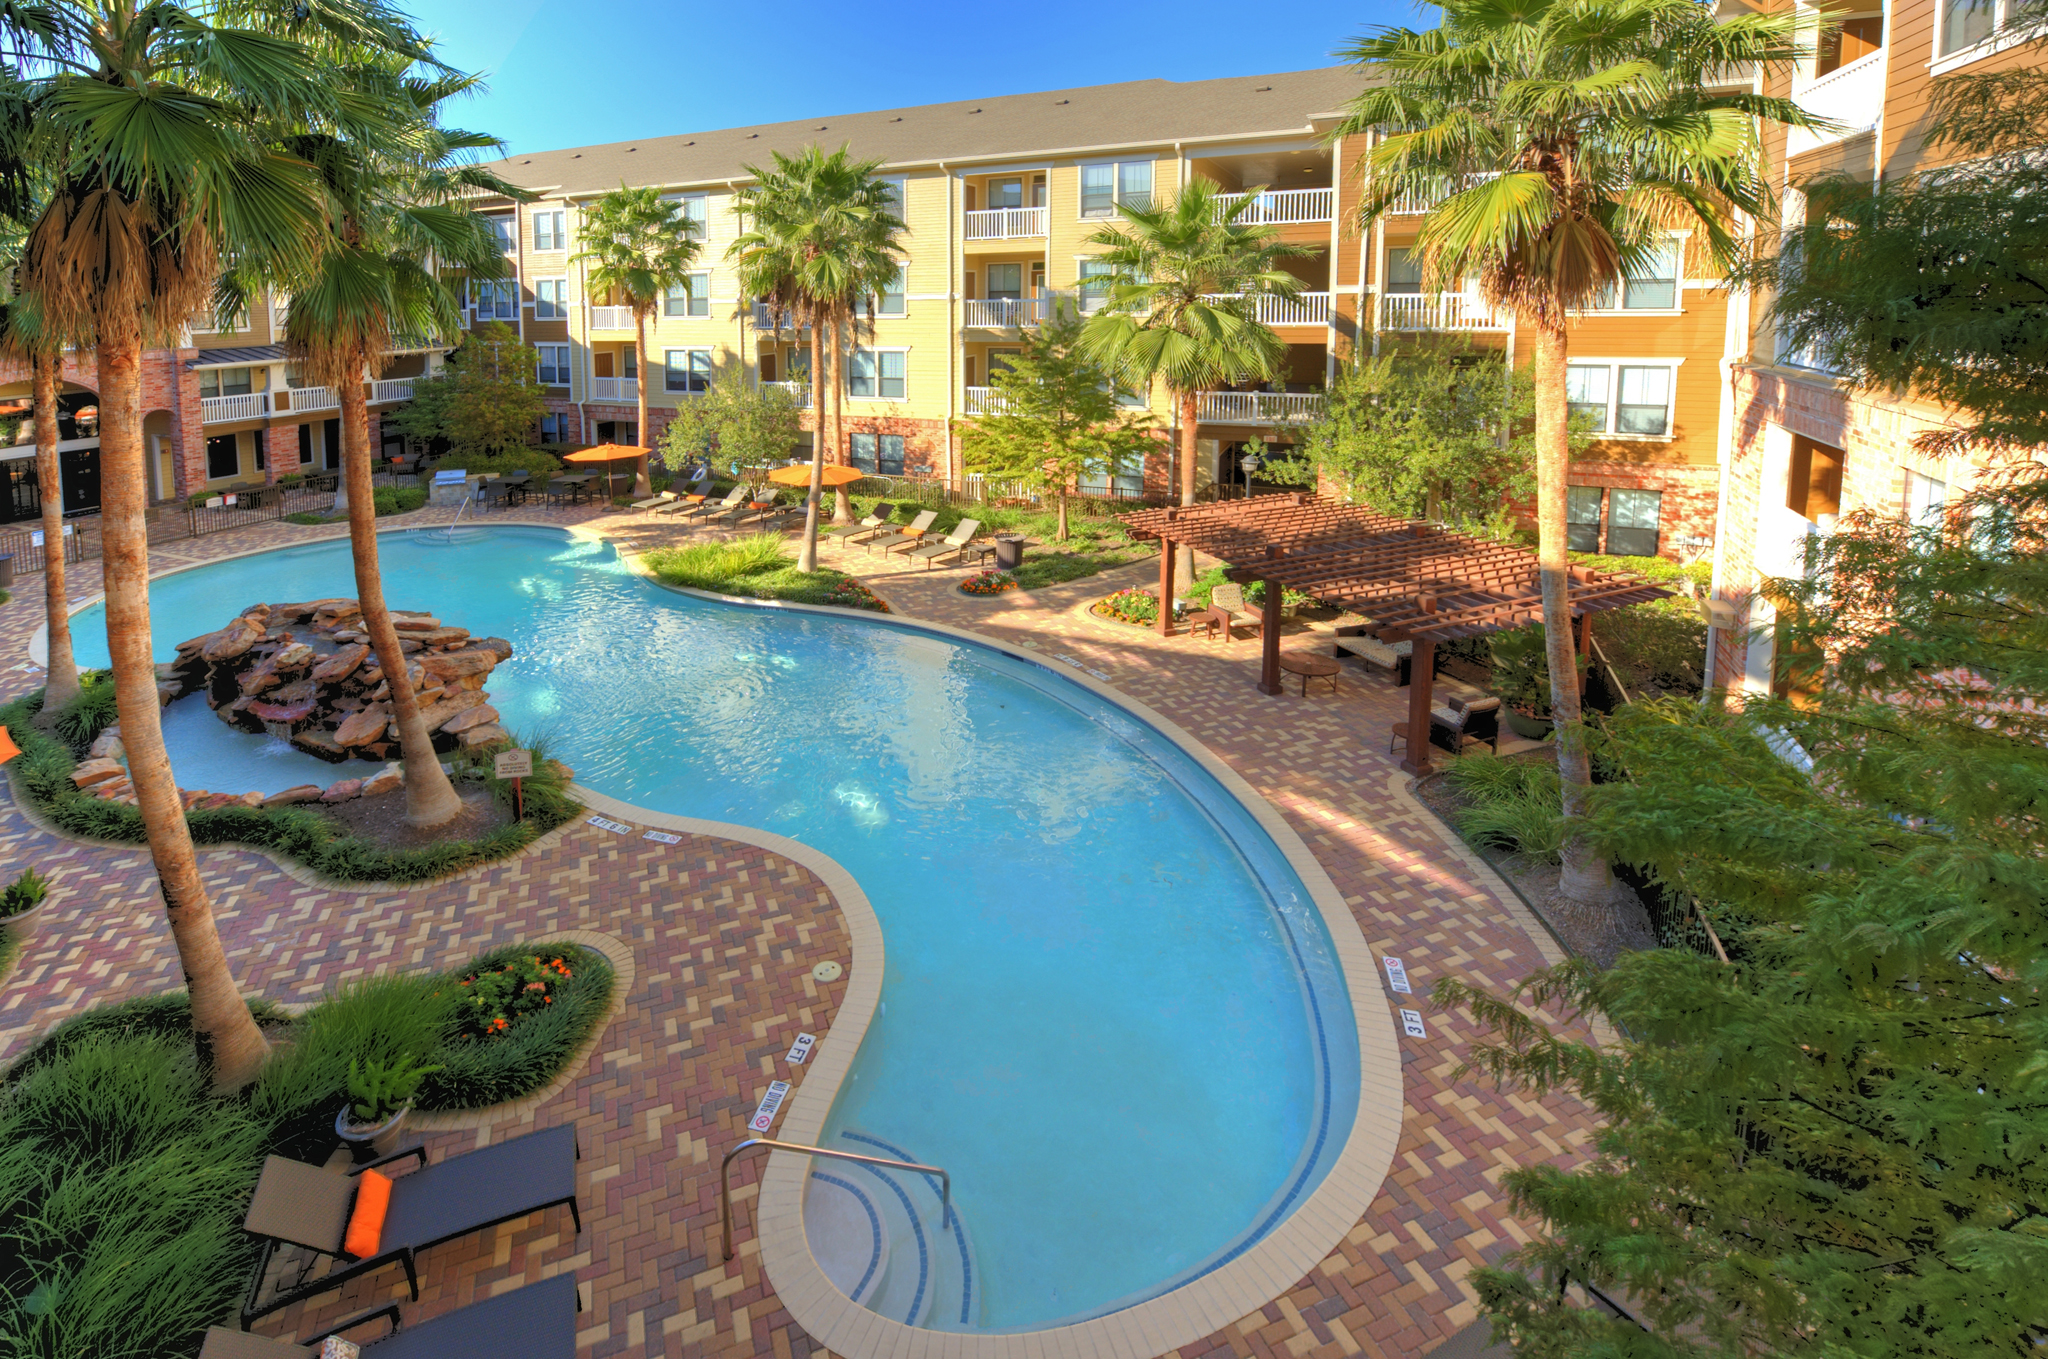 apartments for rent in houston, tx - camden heights